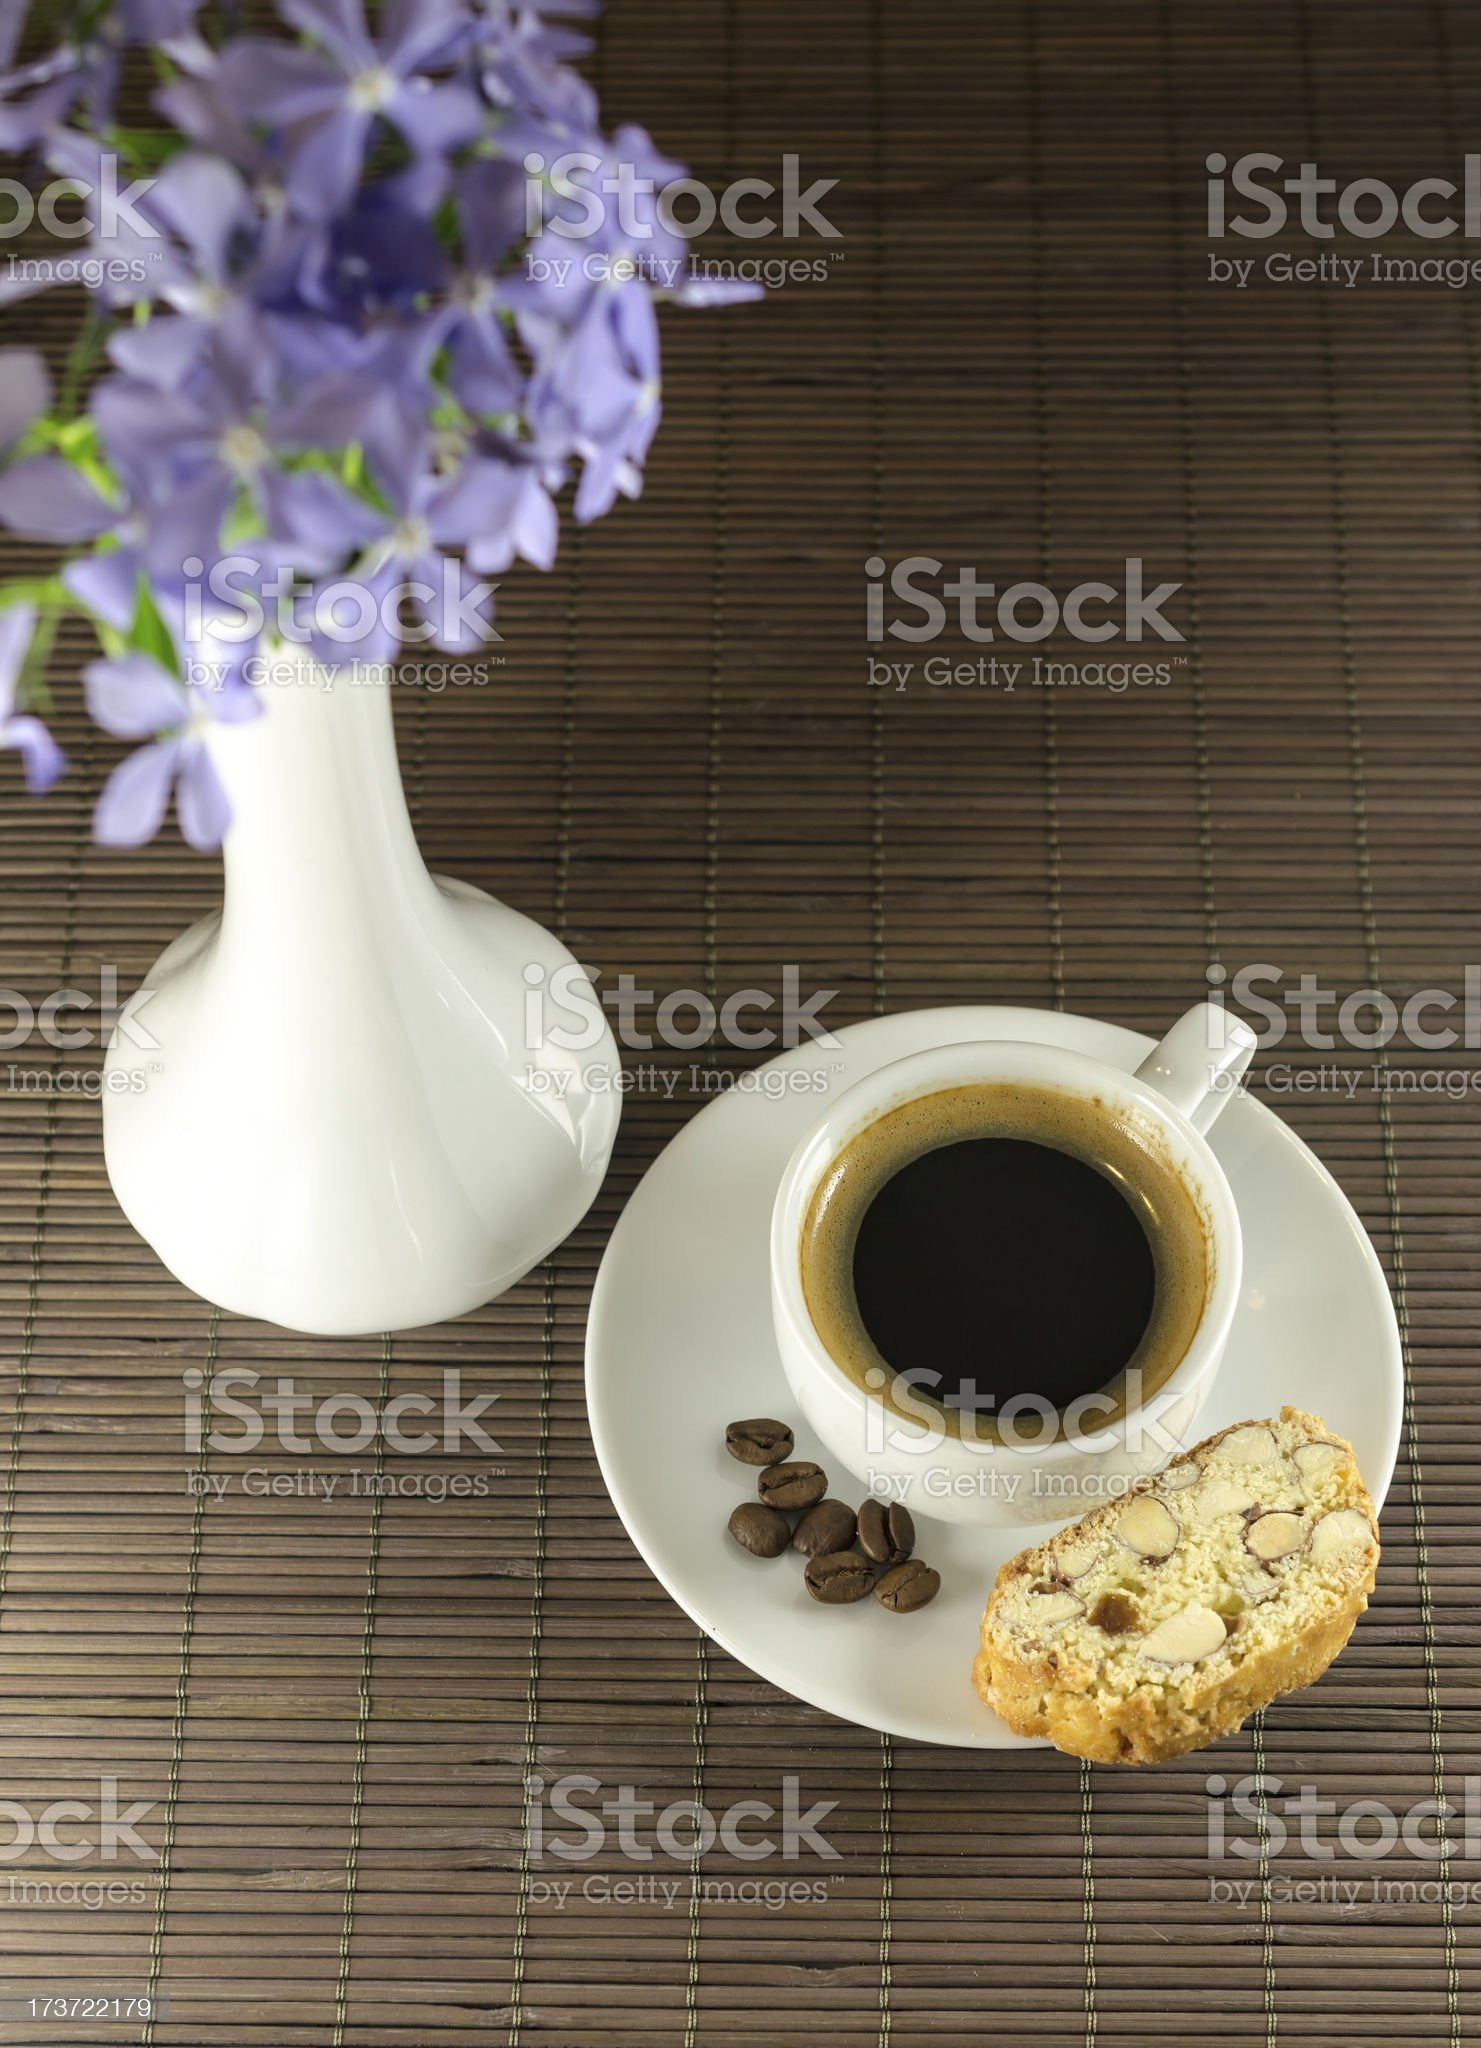 Cup of coffee and biscotti royalty-free stock photo